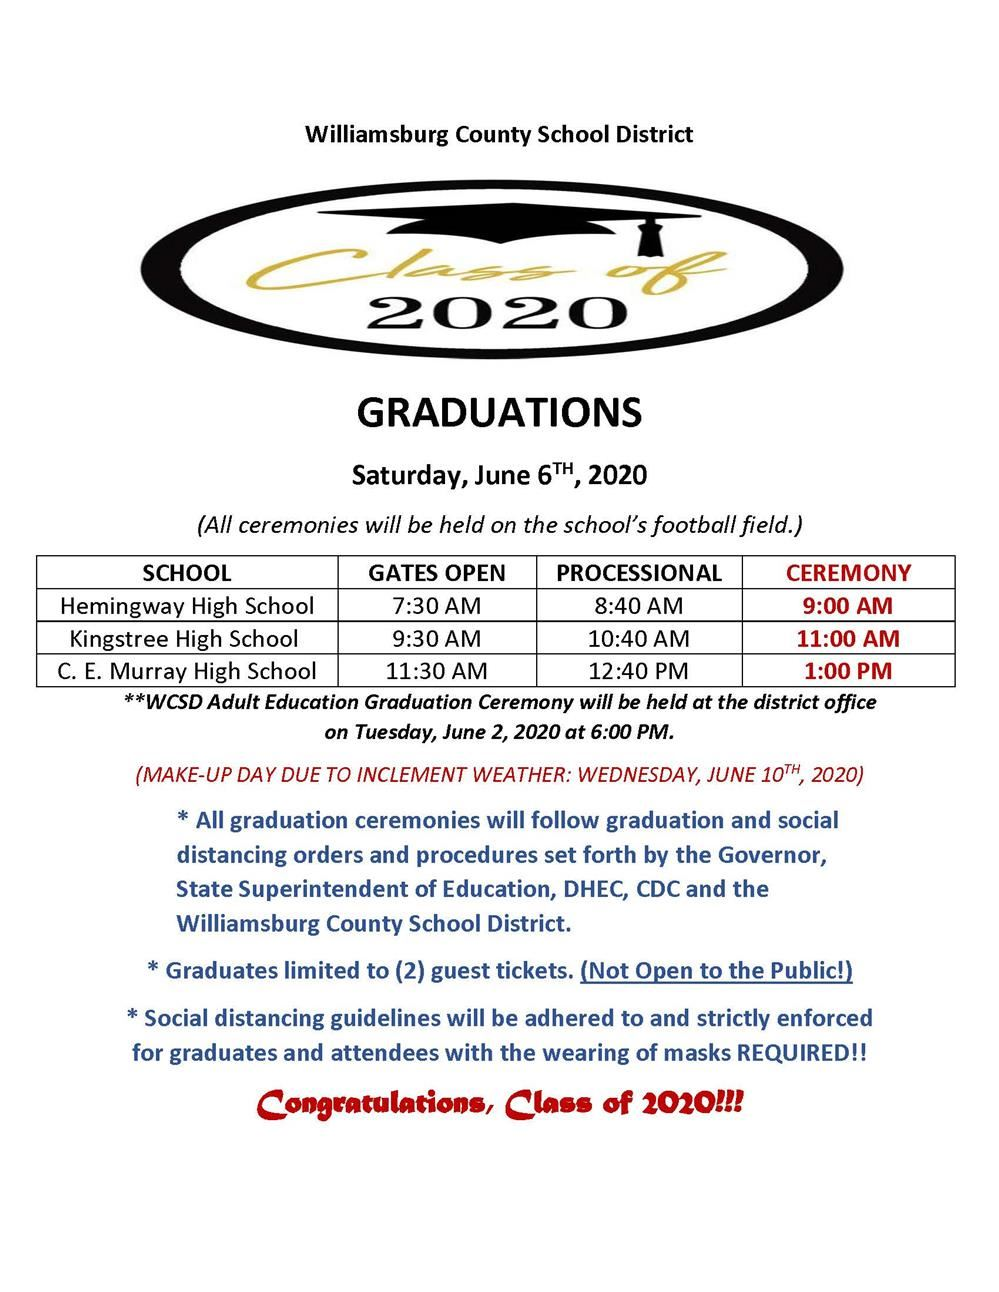 2020 Graduation Ceremonies & Guidelines